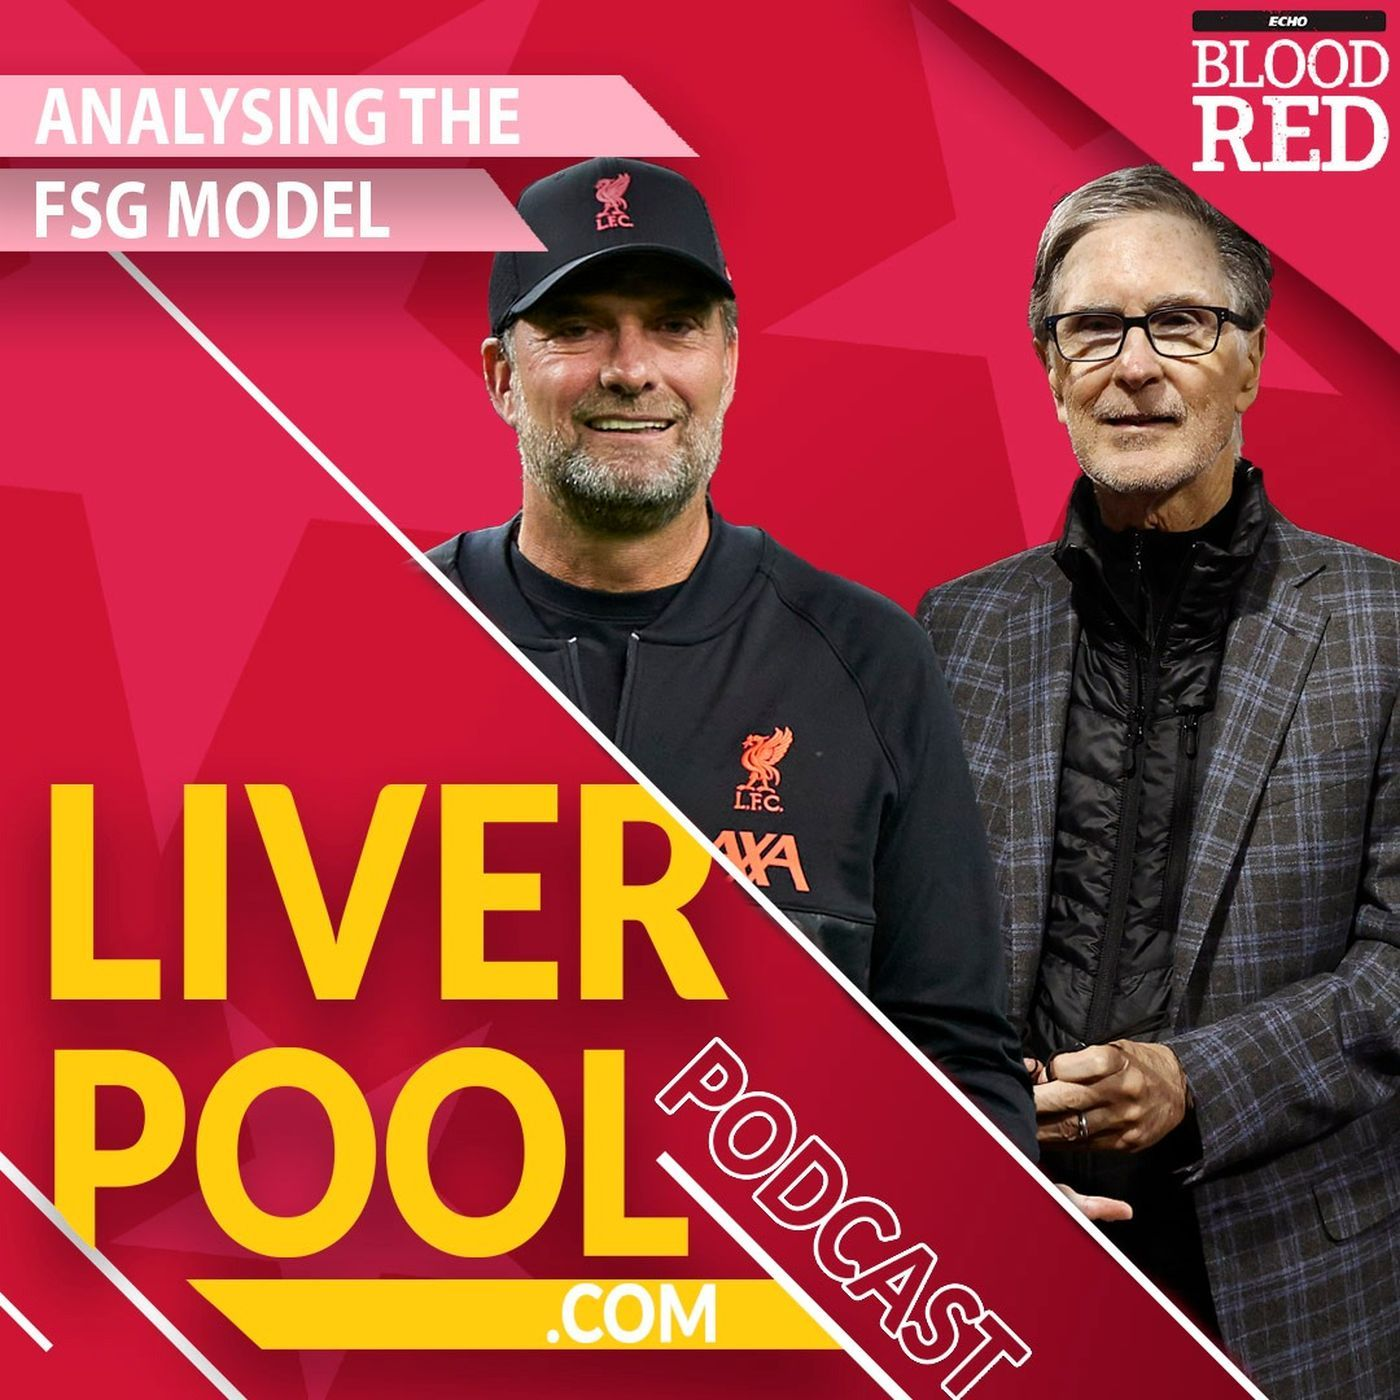 Liverpool.com Podcast: Analysing the FSG model and how it might change beyond Jurgen Klopp